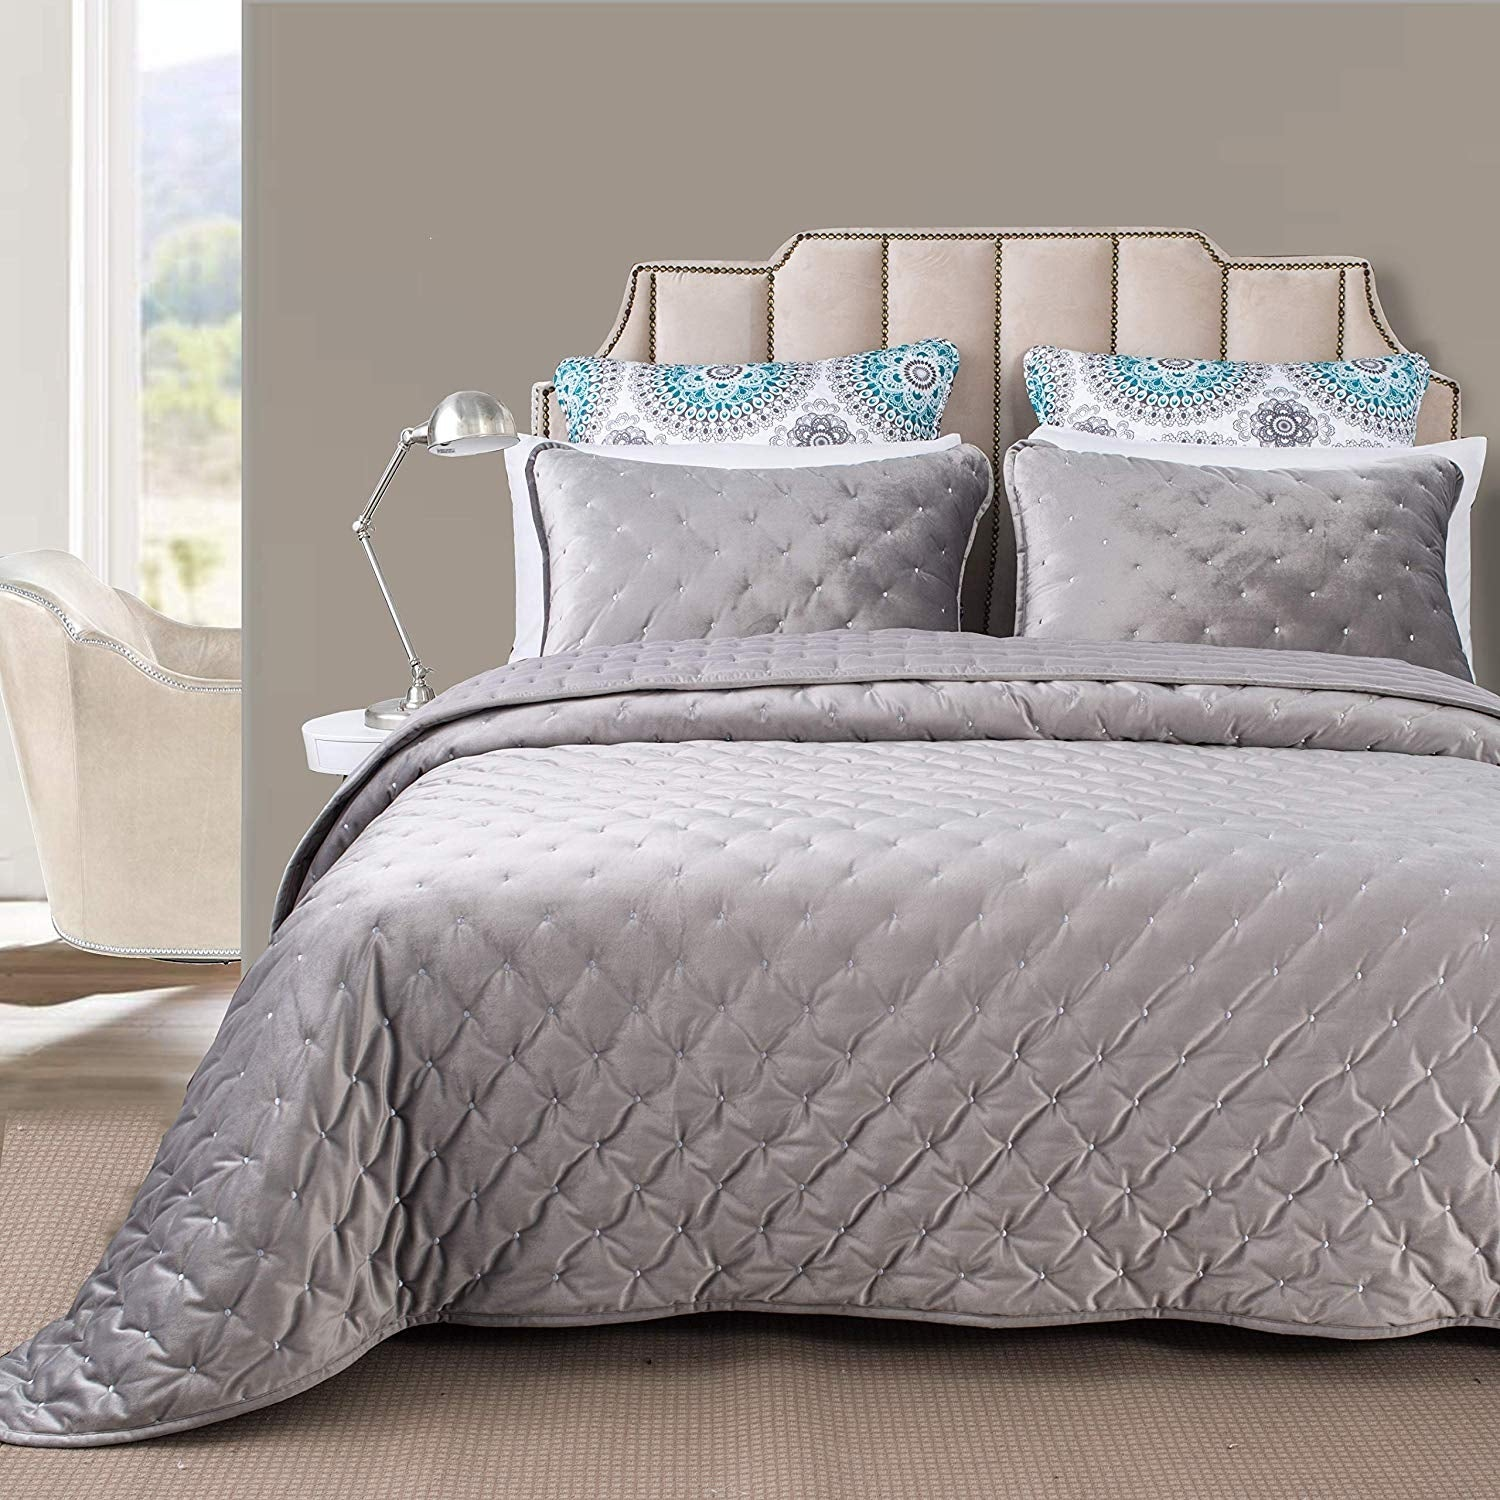 Driftaway 3 Piece Velvet Quilt Set Bedspreads Coverlets Cover Prewashed On Sale Overstock 30581603